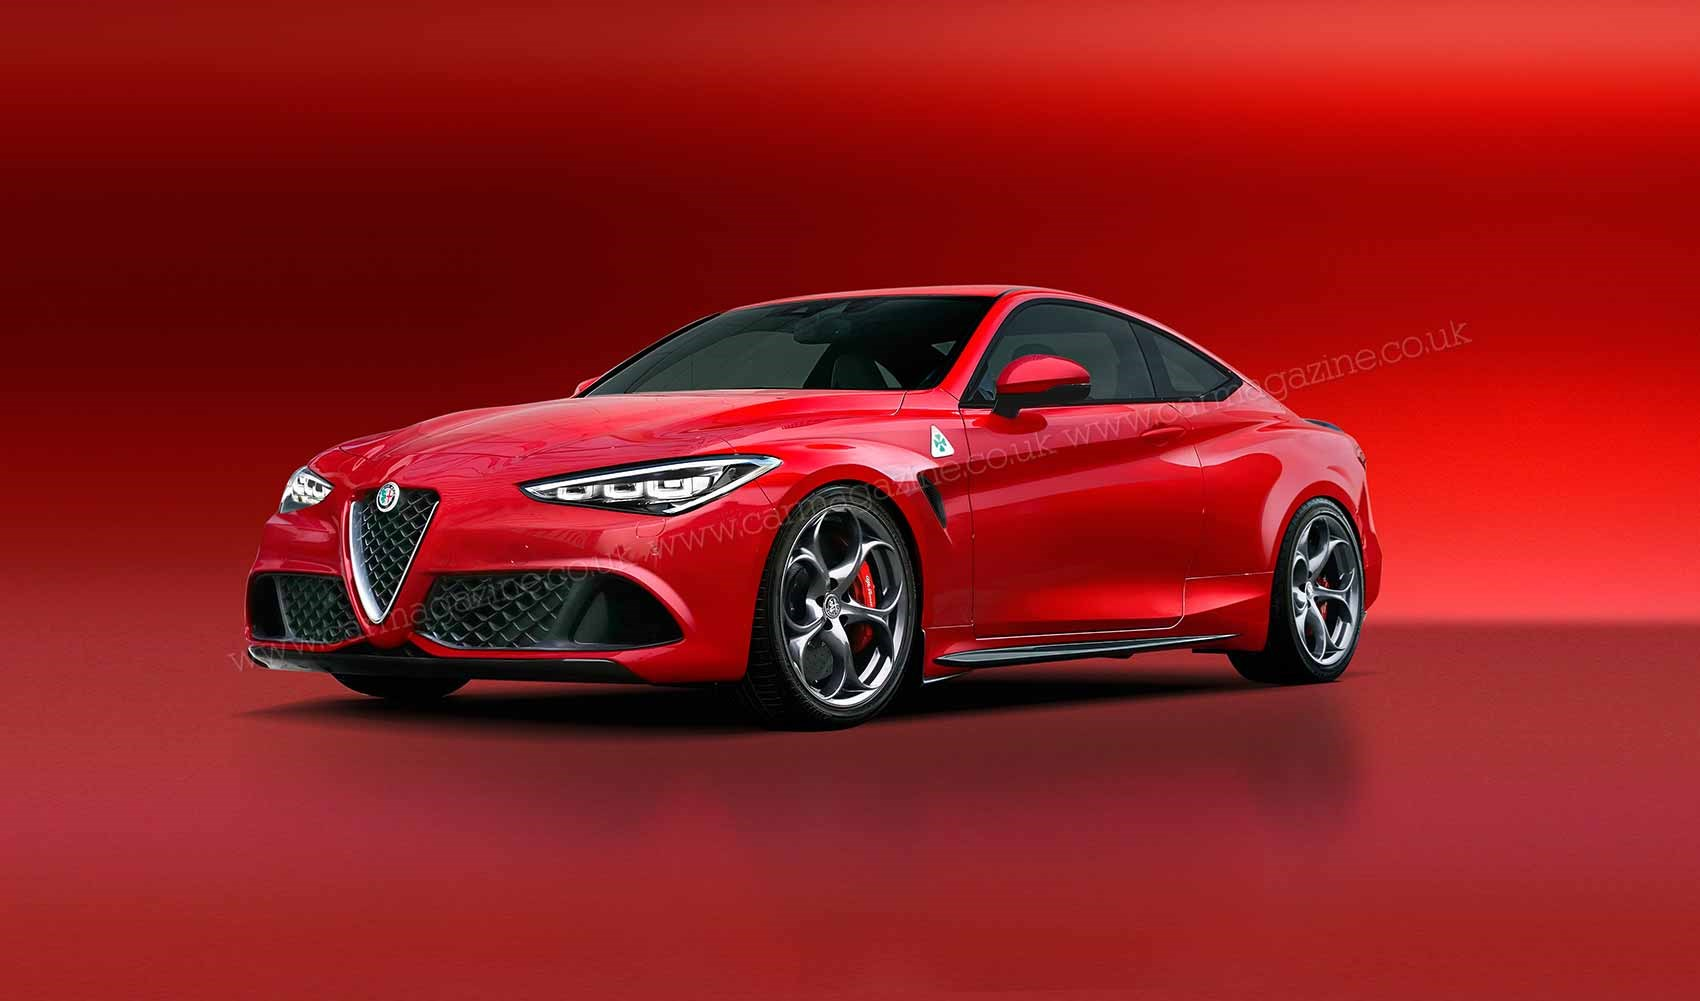 The New Alfa Romeo Gtv Coupe Depicted In Car S Artist Impression